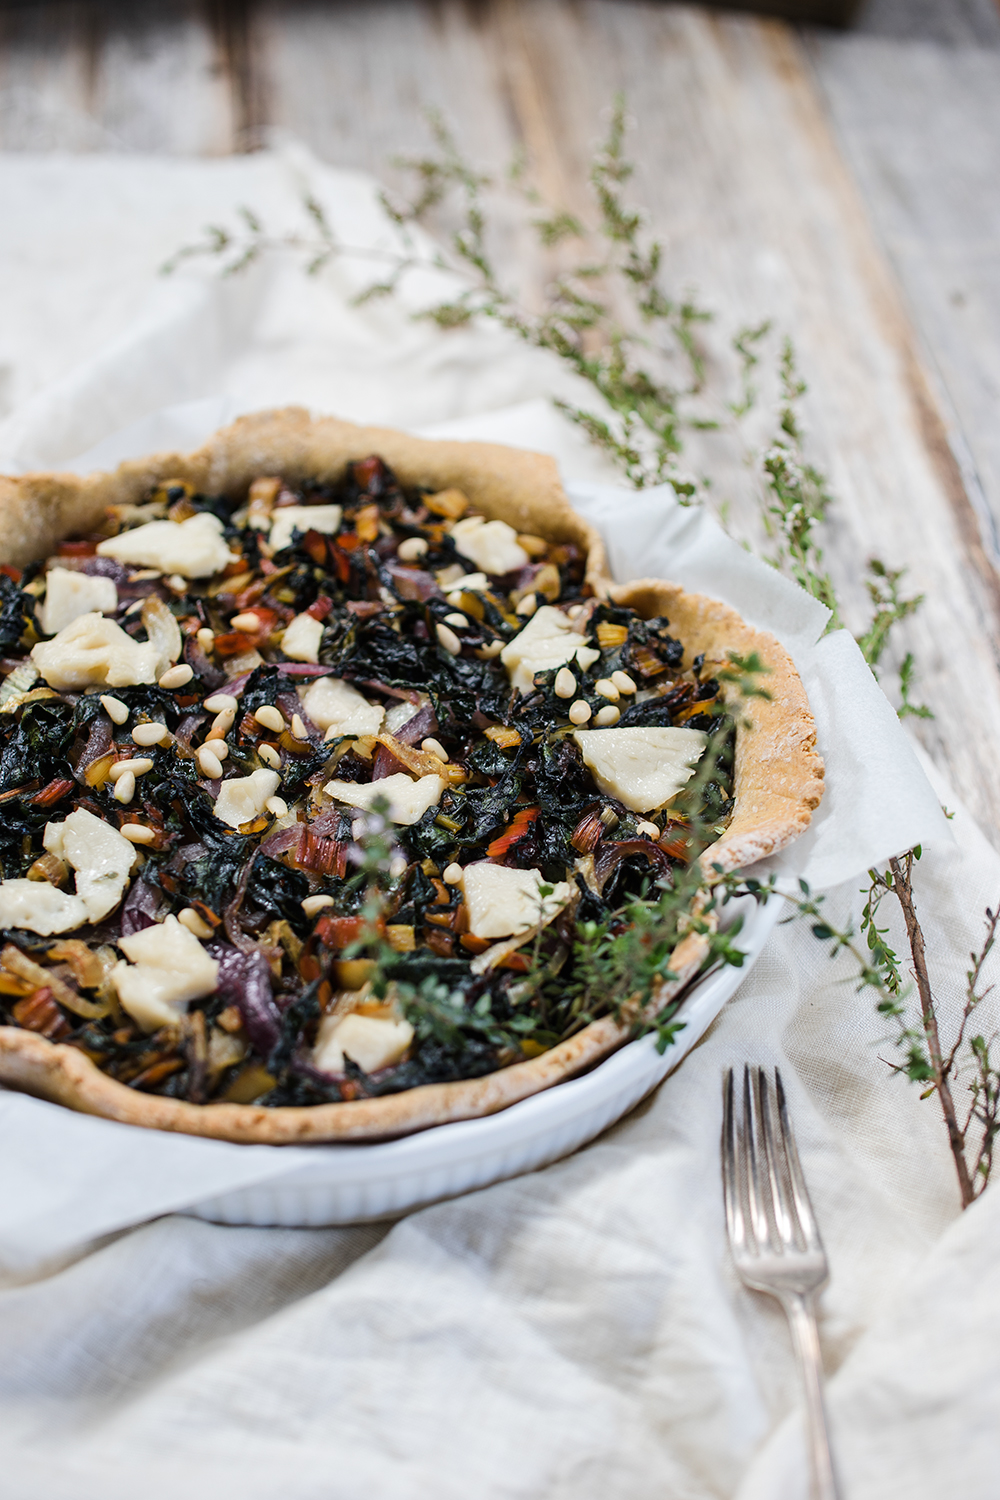 Rustic Chard and Onion Tart